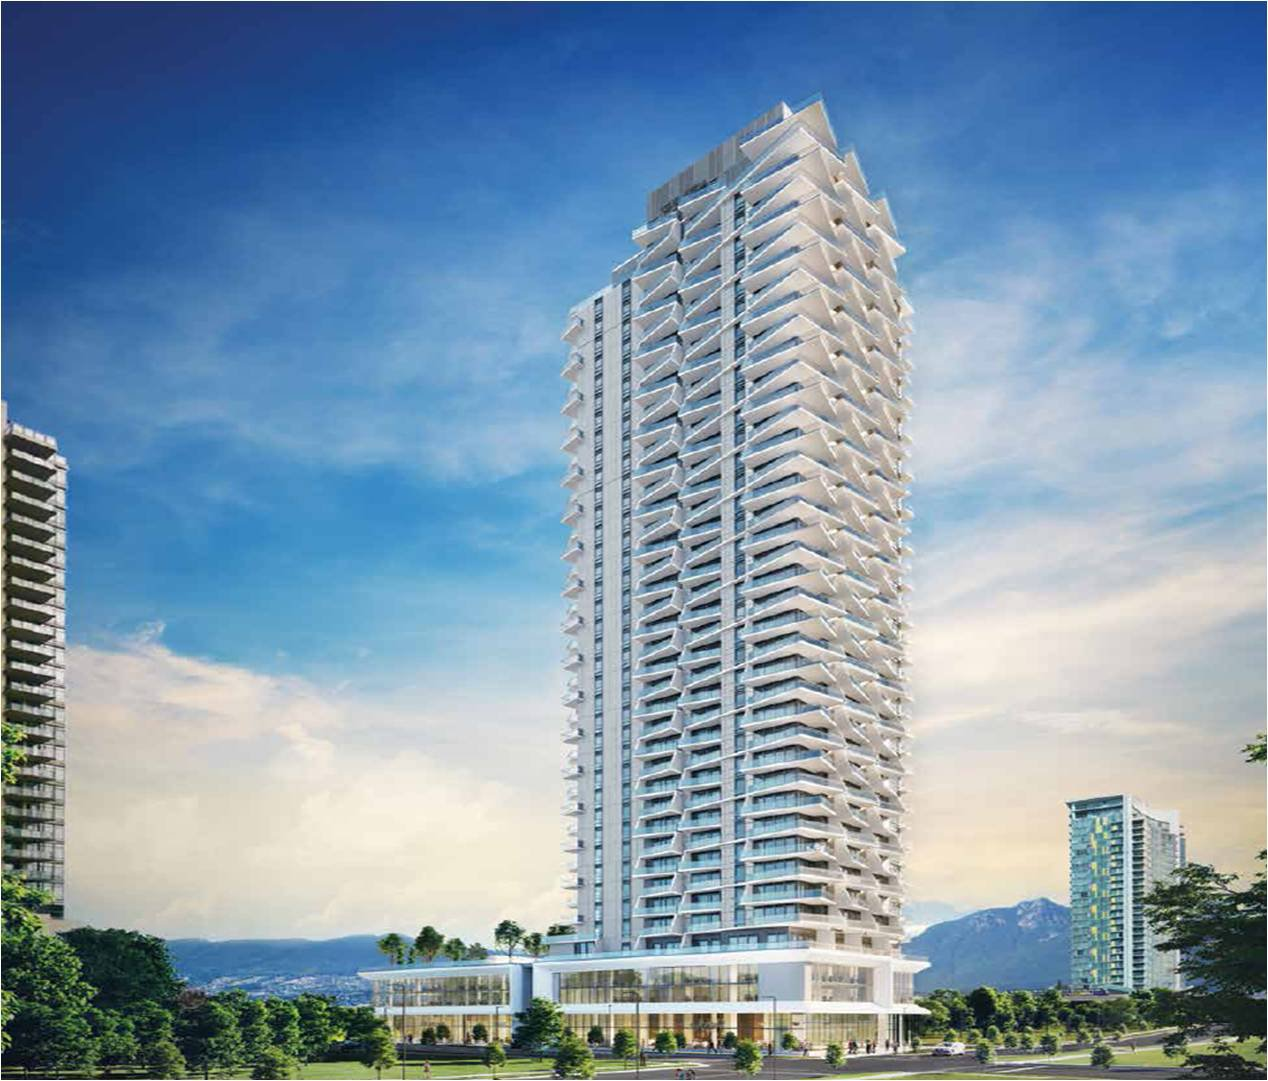 Main Photo: #1303 at AKIMBO by IMANI in Burnaby: Brentwood Park Condo for sale (Burnaby North)